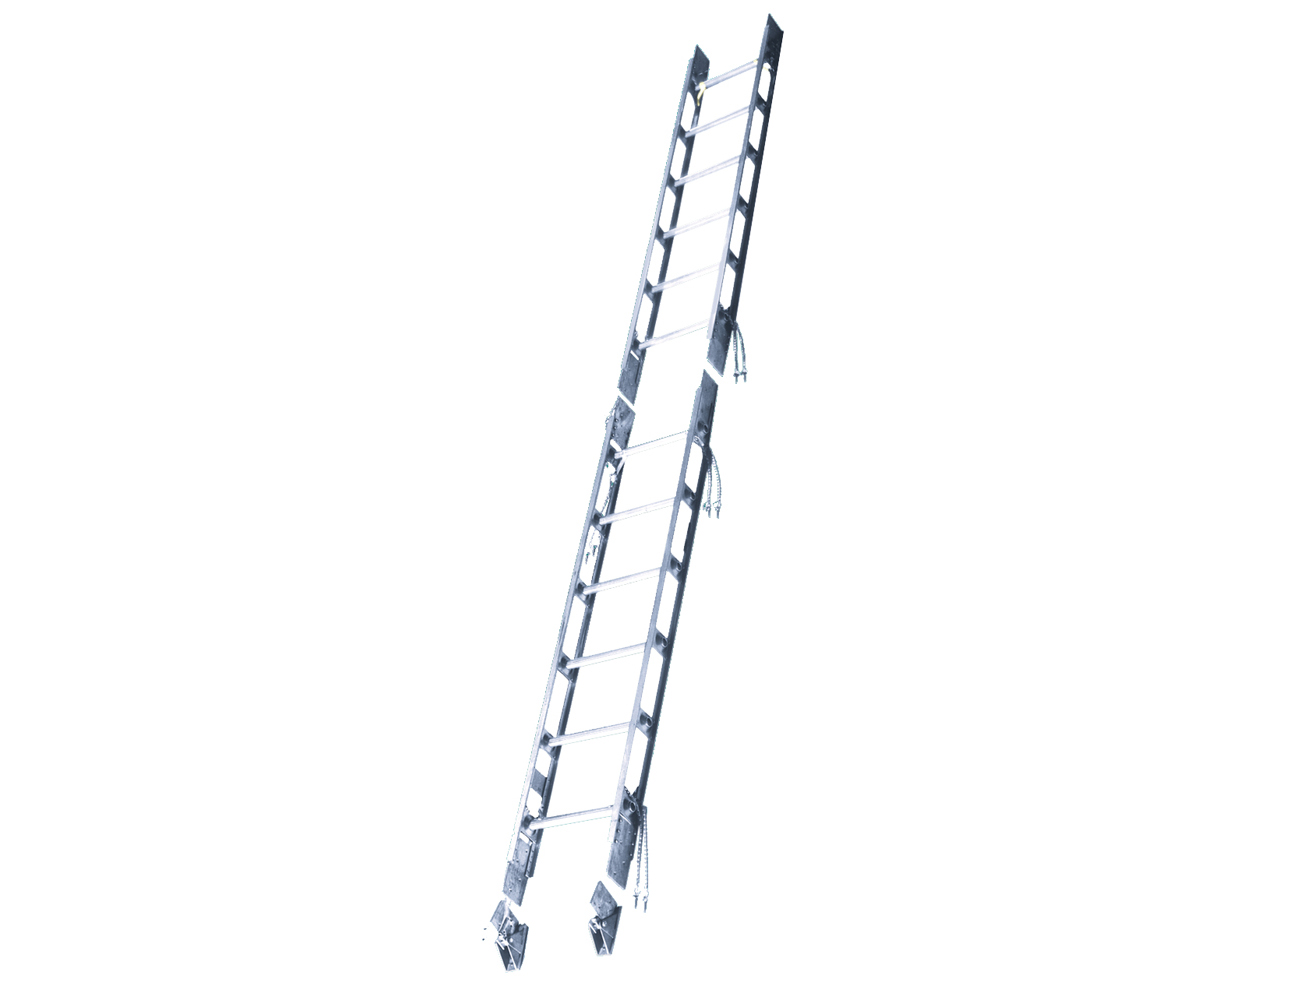 Modular Sectional Ladders